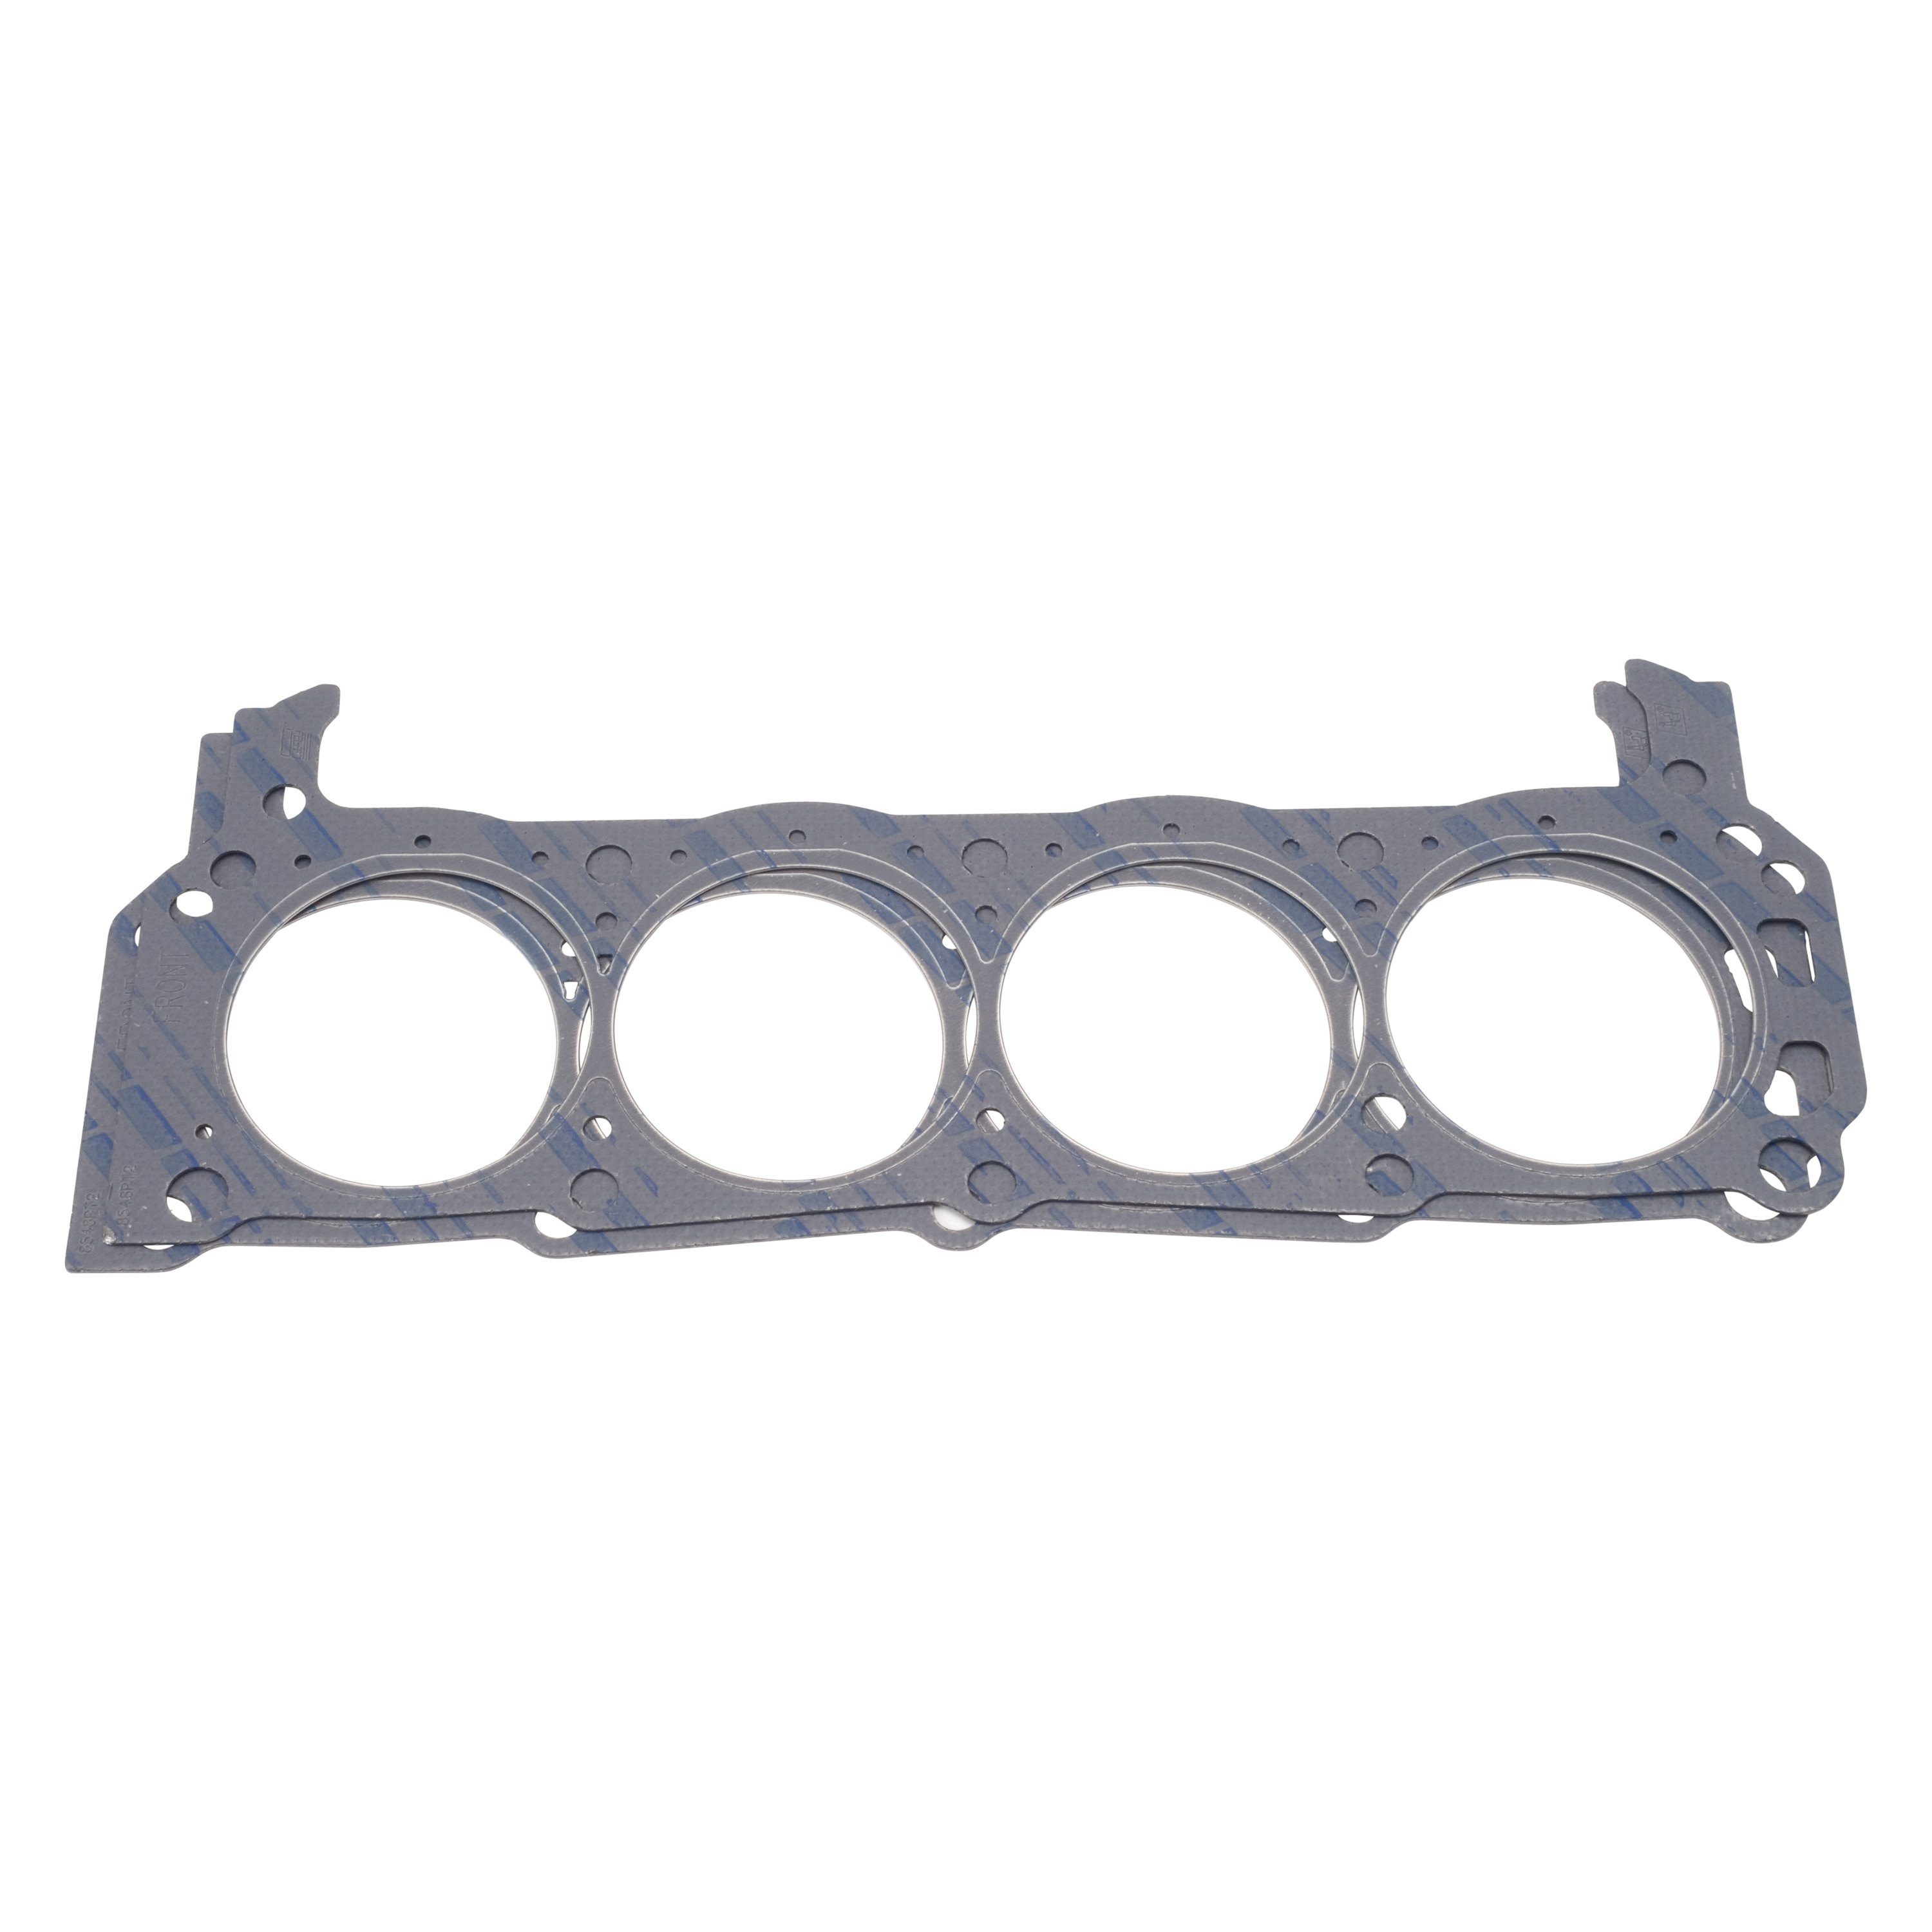 Edelbrock Ford F 150 50l With Small Block Engine 1986 Cylinder Head Gasket